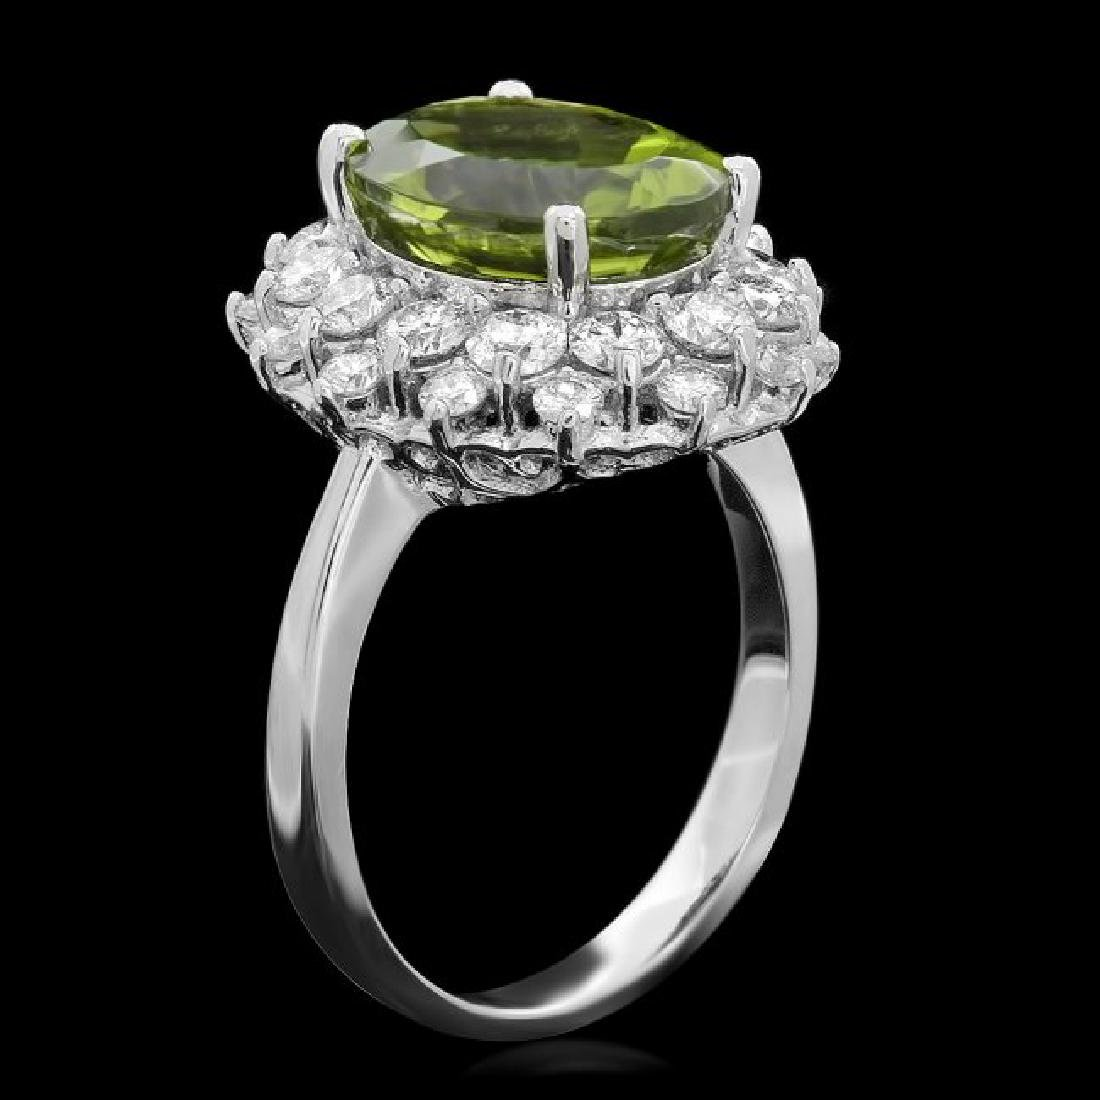 14k White Gold 5.00ct Peridot 1.60ct Diamond Ring - 2